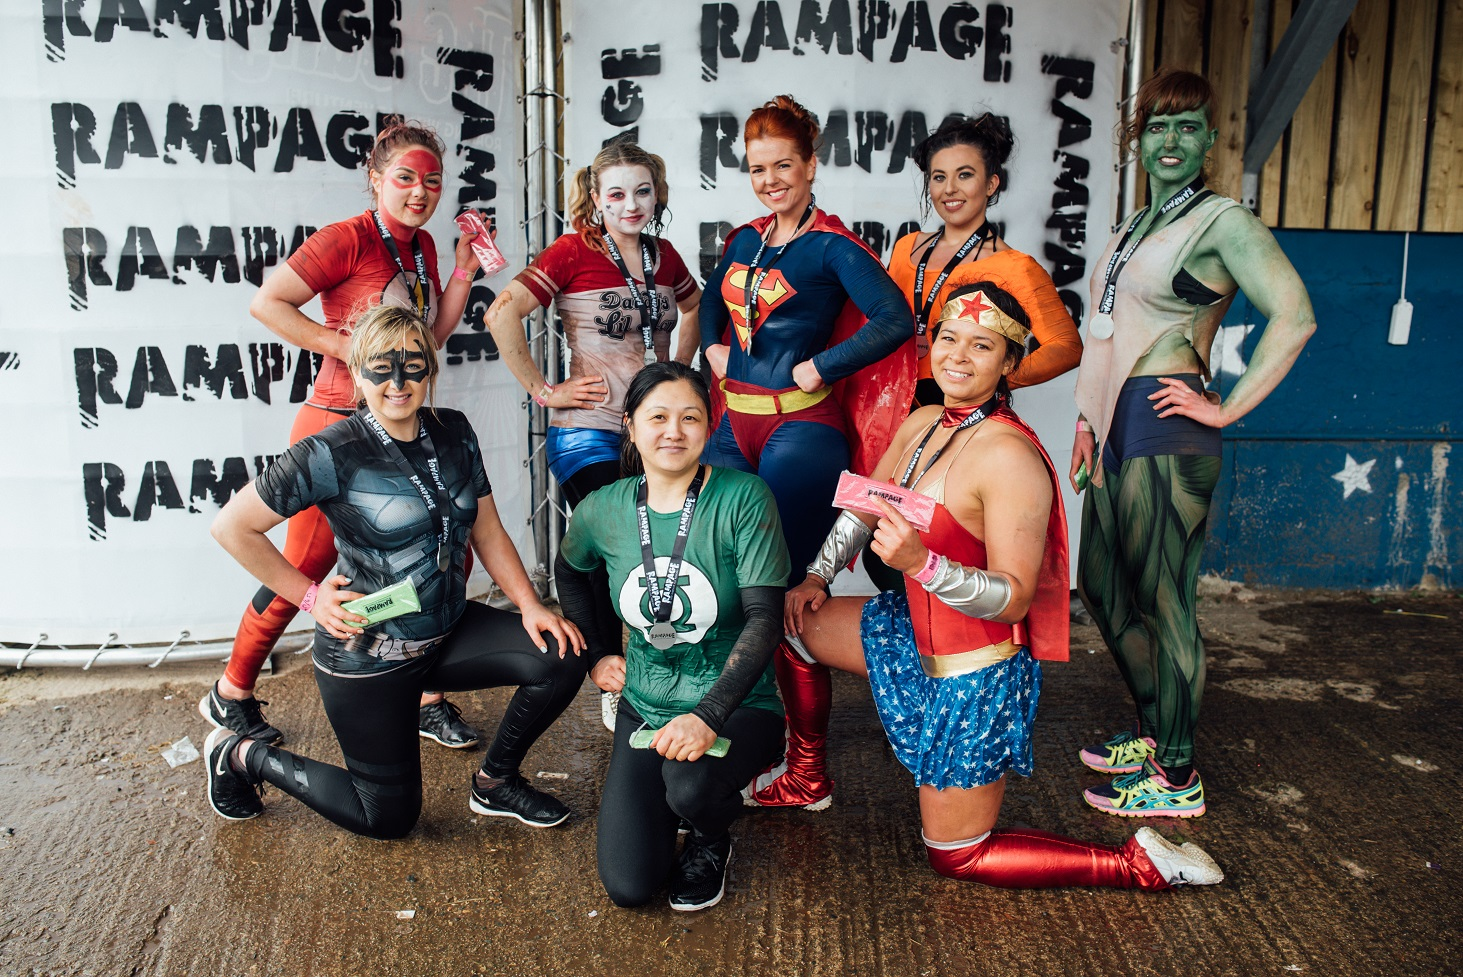 Superheros at Rampage